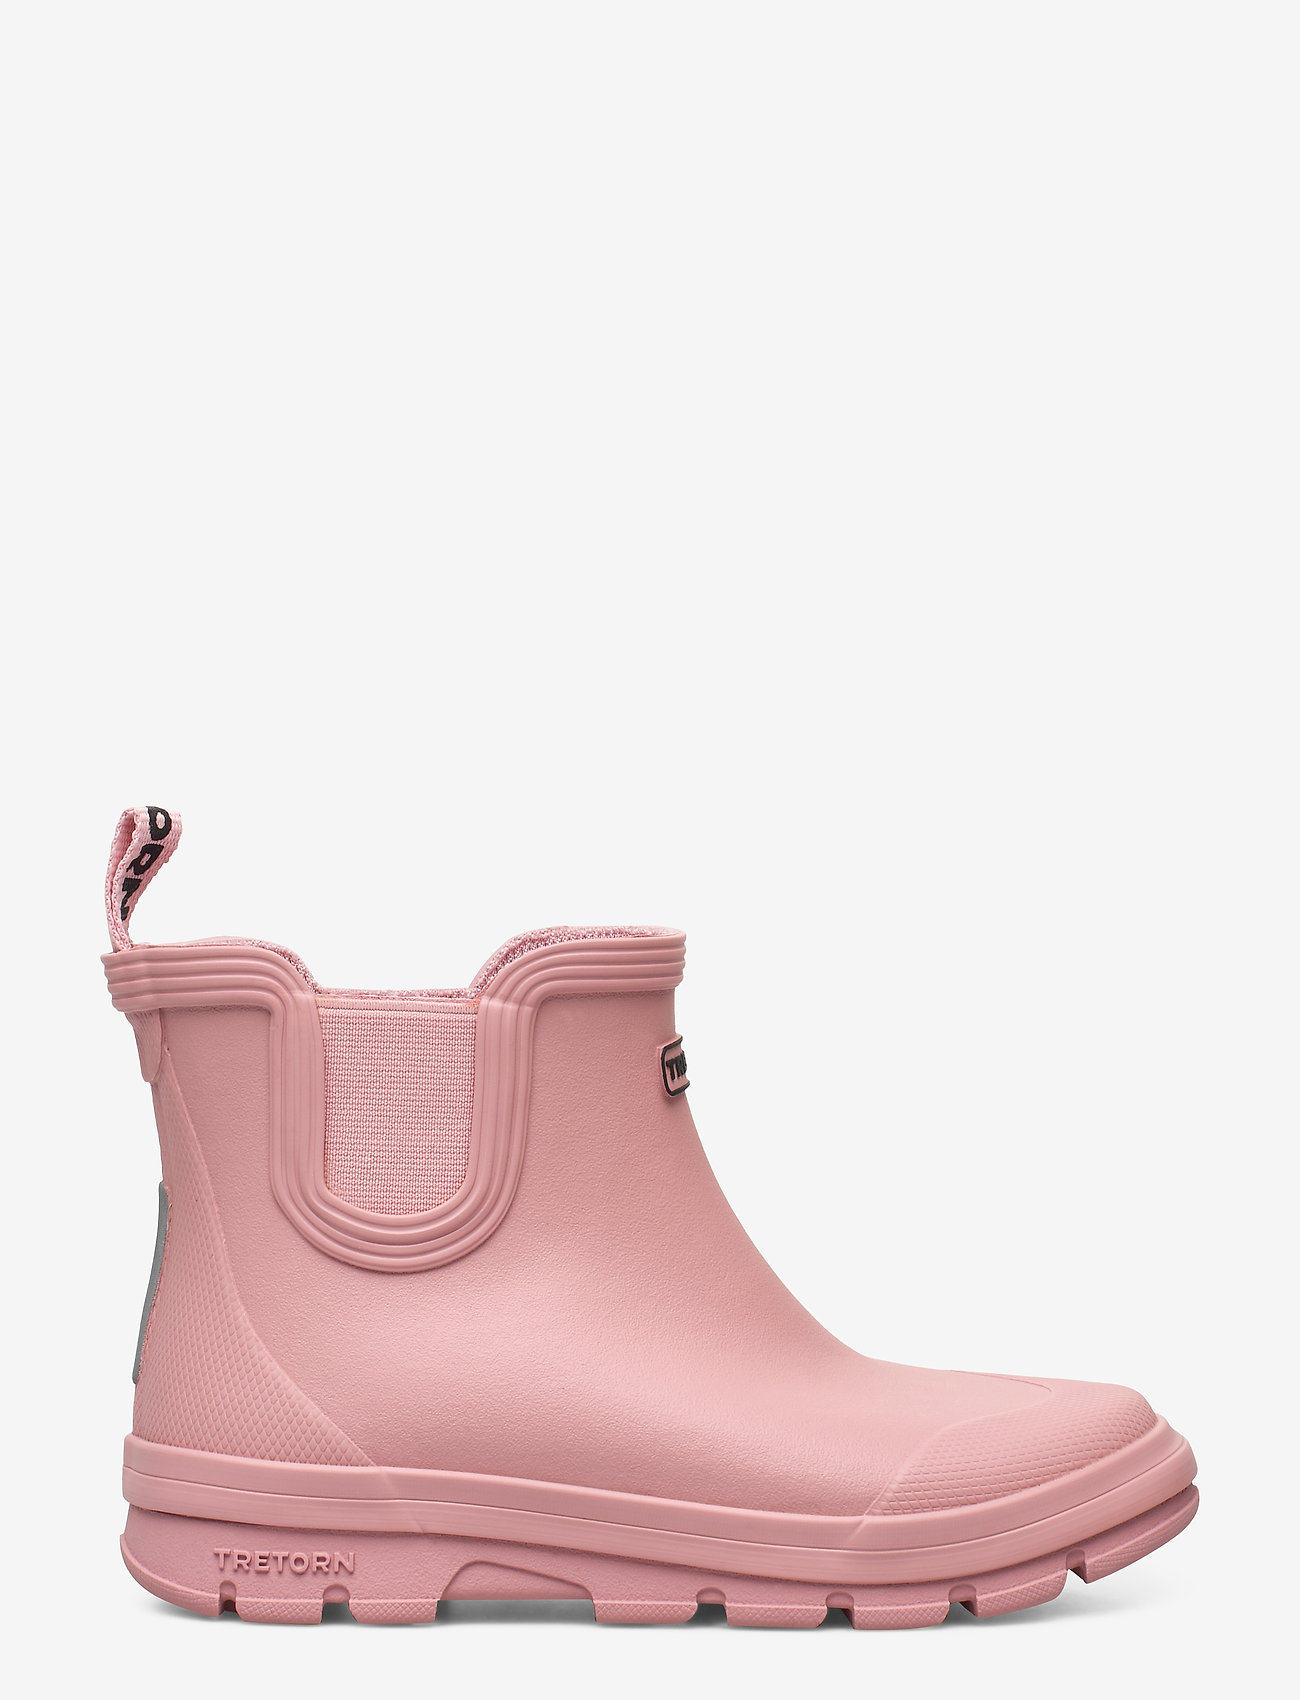 Tretorn - AKTIV CHELSEA - bottes en chaouthouc - 099/light rose - 1